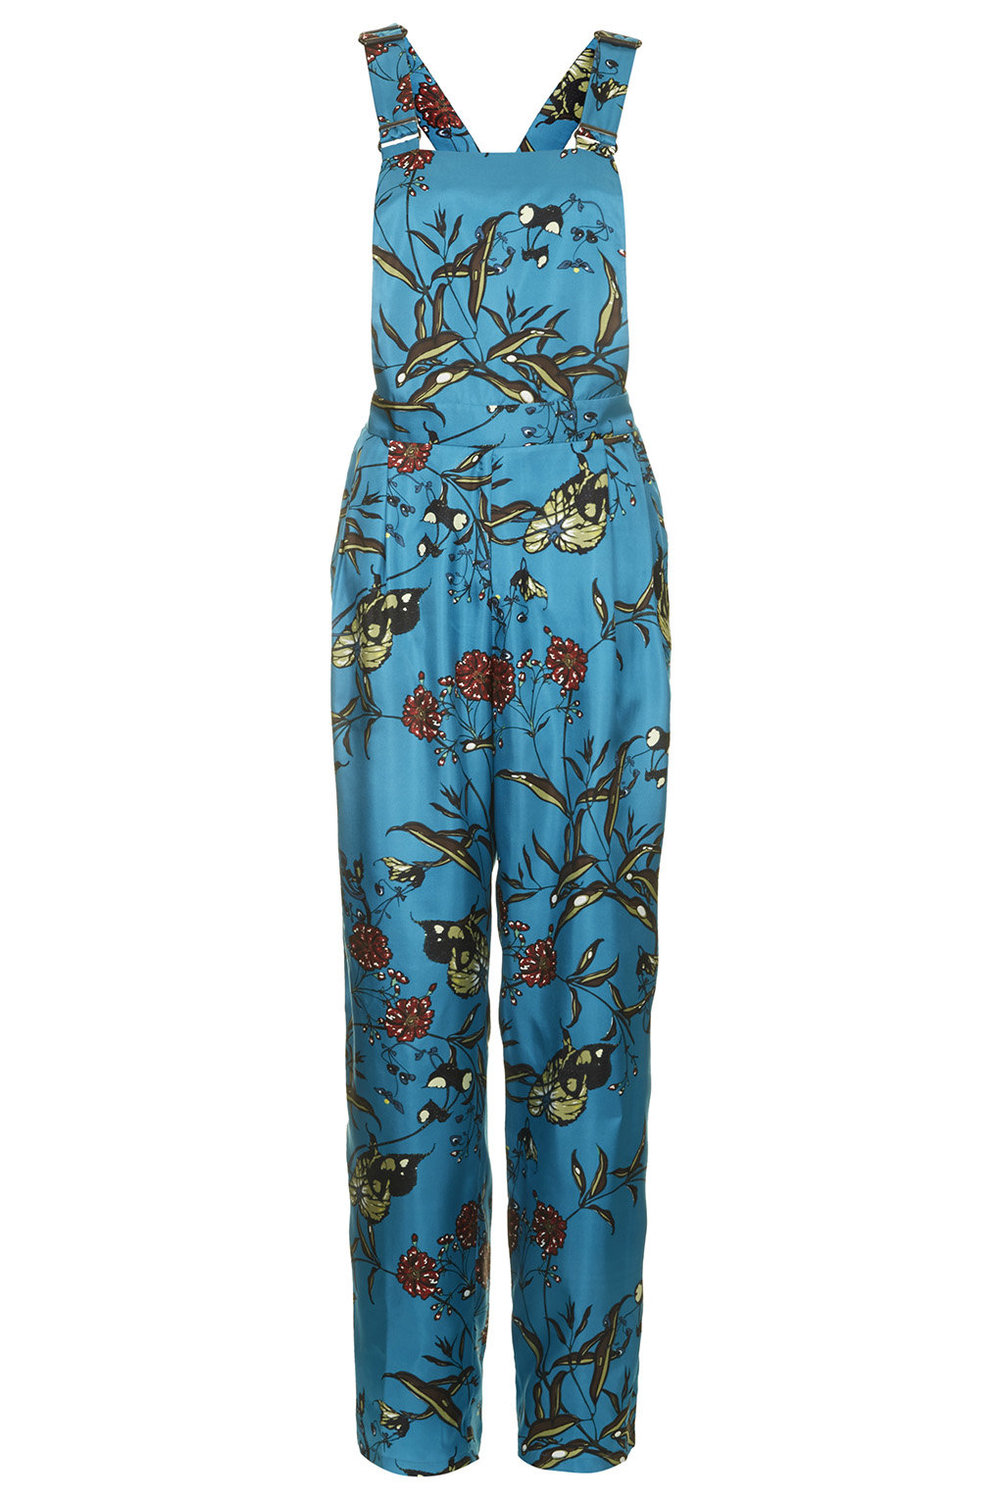 Topshop Fable Print Dungarees by Boutique. Topshop USA. $210.